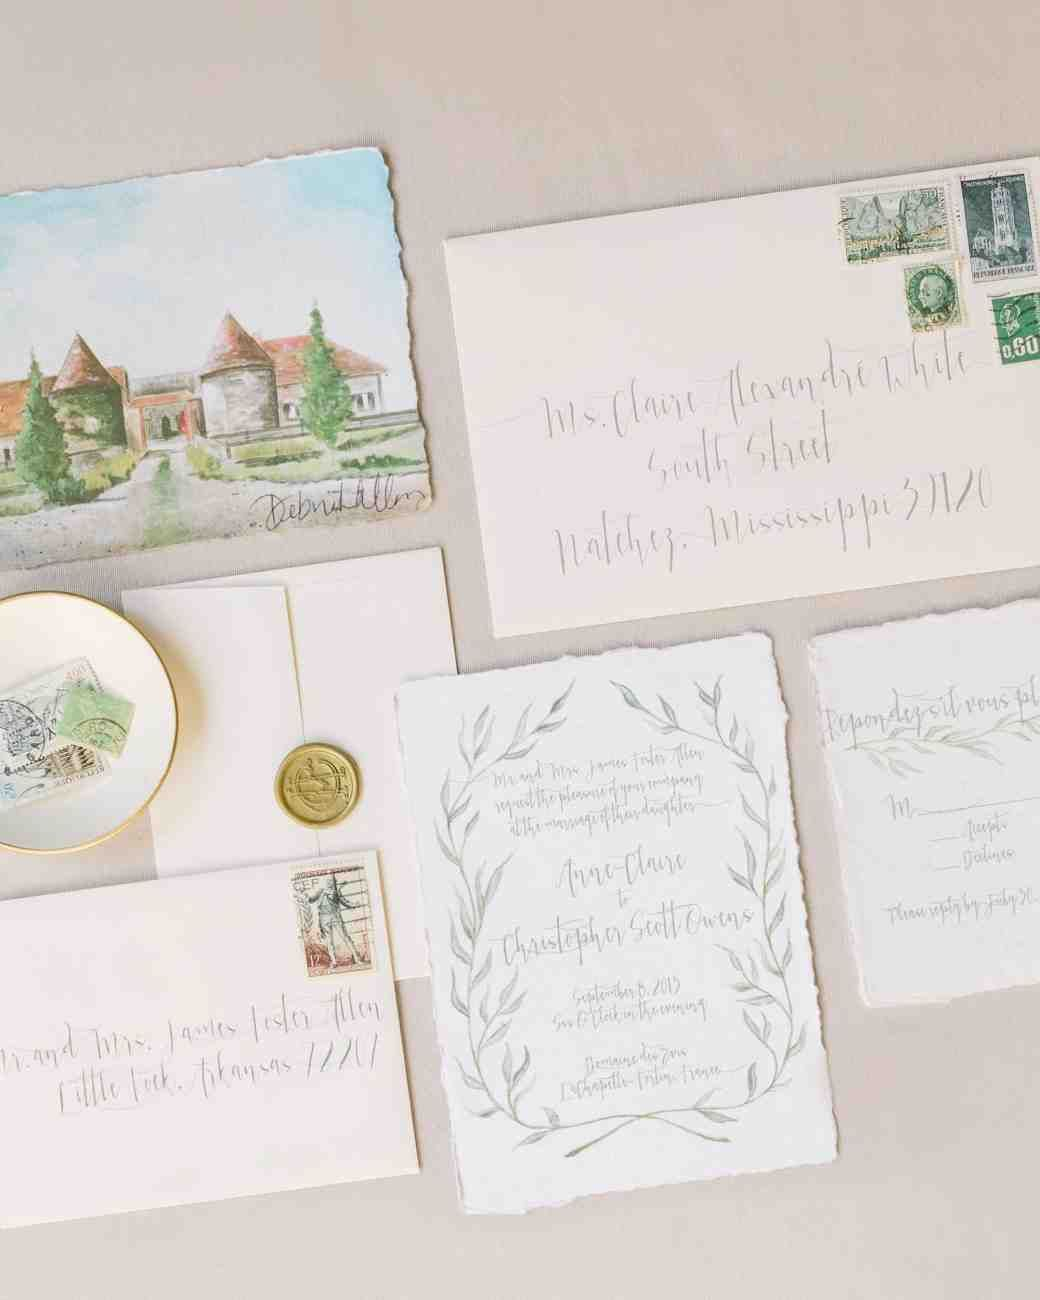 Intimate Wedding Invitation Wording: An Elegant, Intimate Wedding In The French Countryside